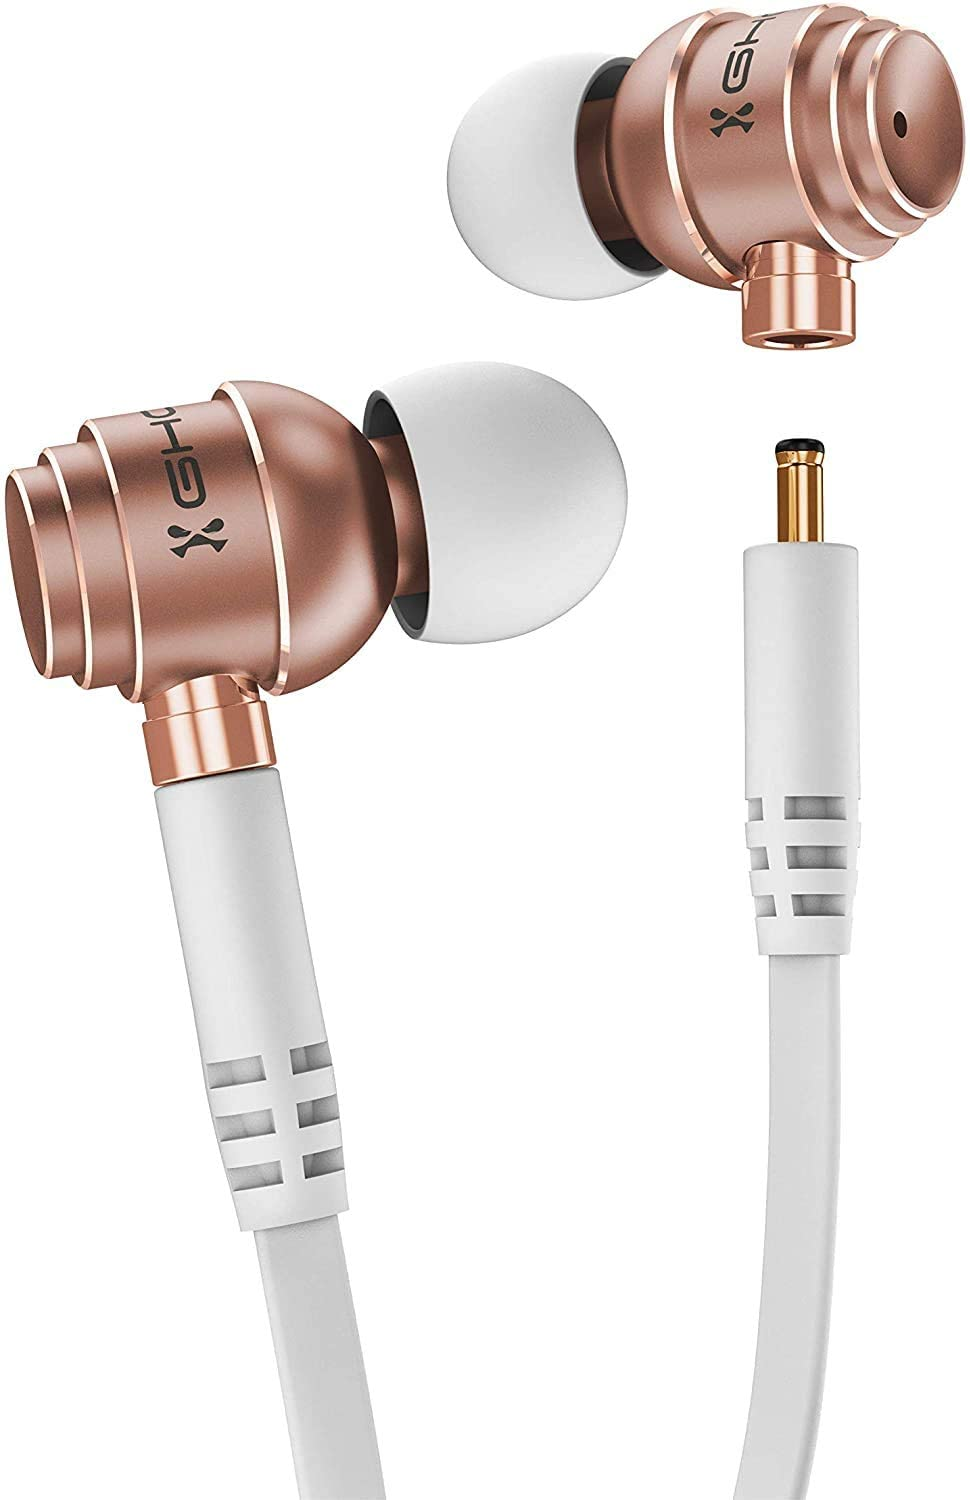 Ghostek Fuze Wireless and Wired Earbuds Best Headphones for Sport Gym and Running Ear Buds with Microphone Unique AirPods and Earphones for iPhone, Galaxy, Pixel, iPad - (White/Rose Gold)